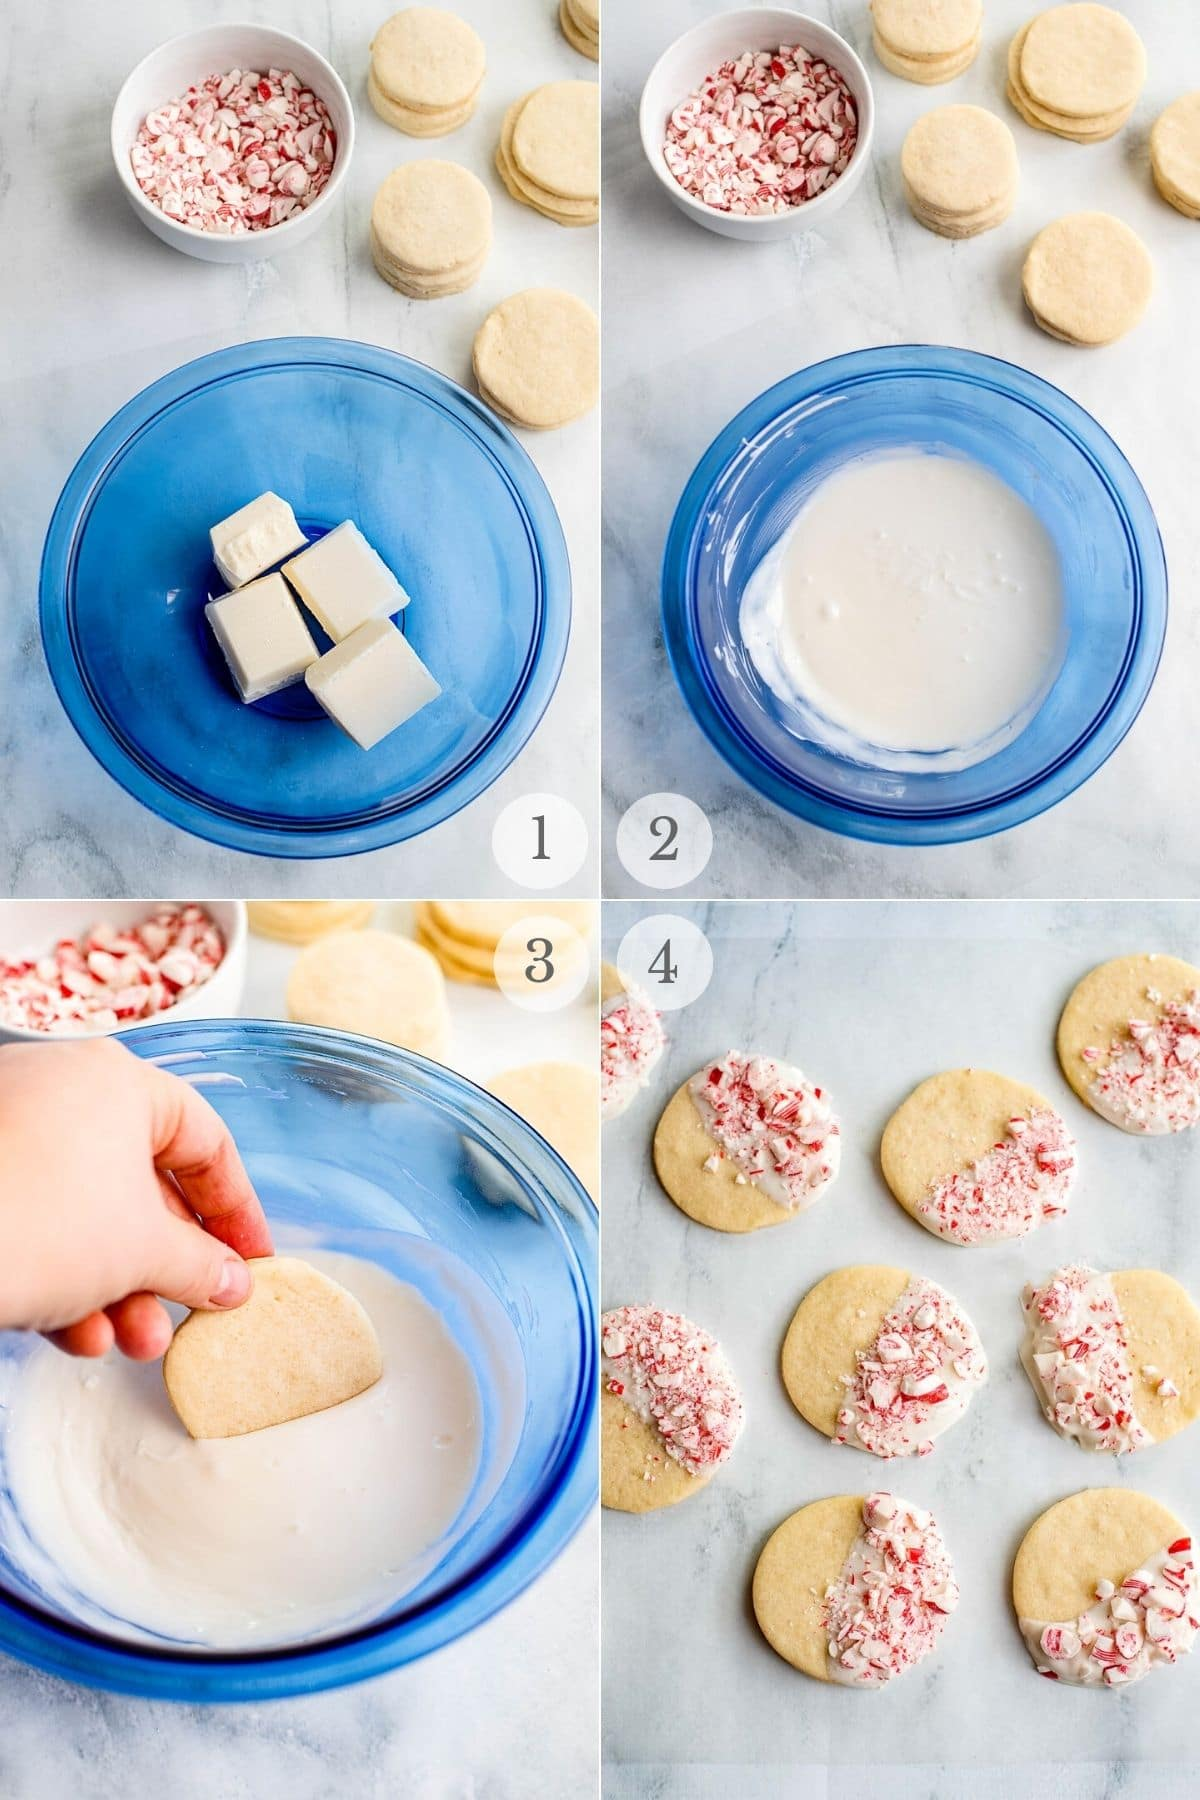 decorating butter cookies recipe steps 1-4